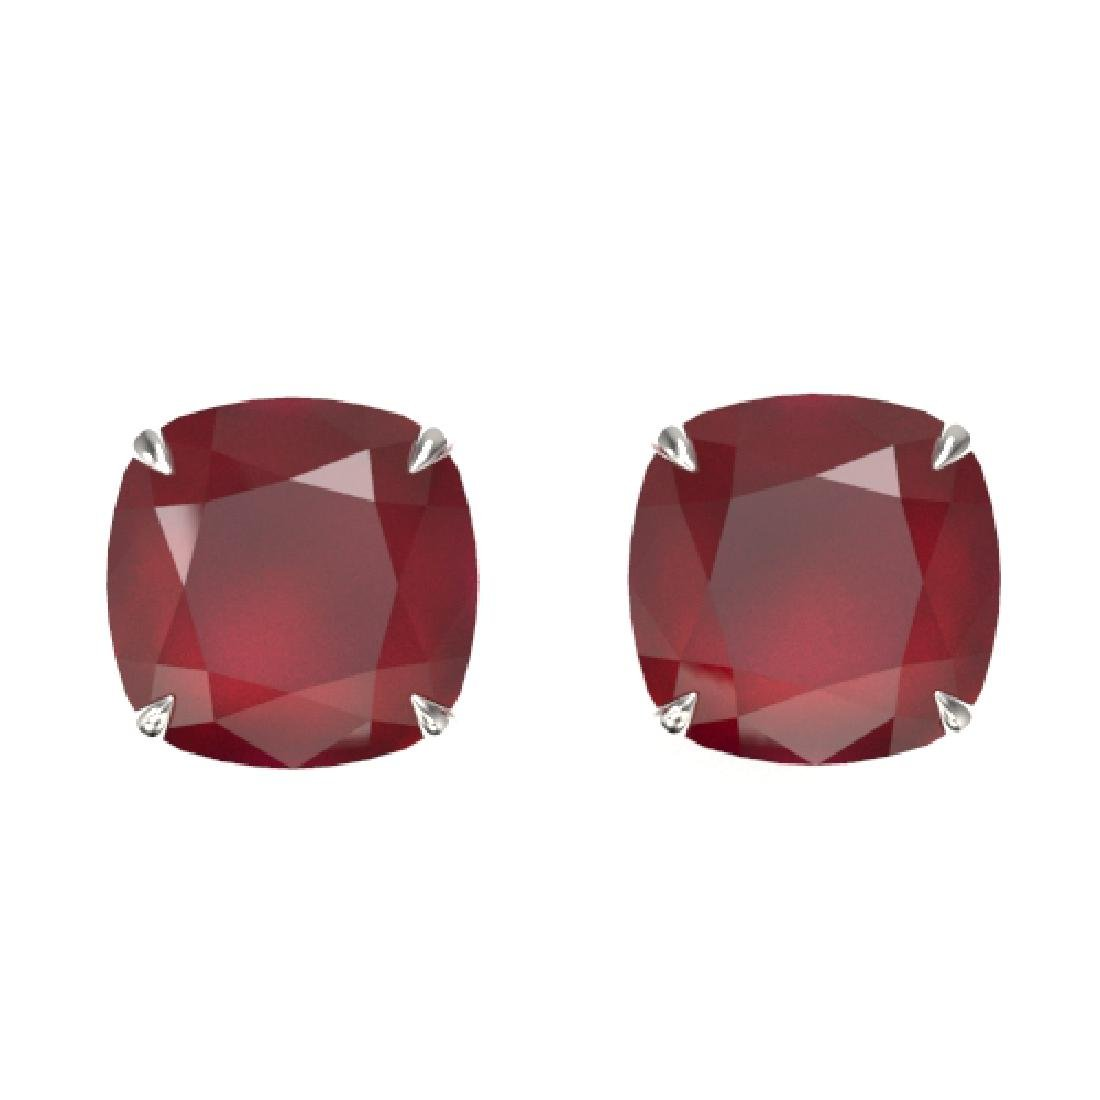 12 CTW Cushion Cut Ruby Designer Solitaire Stud